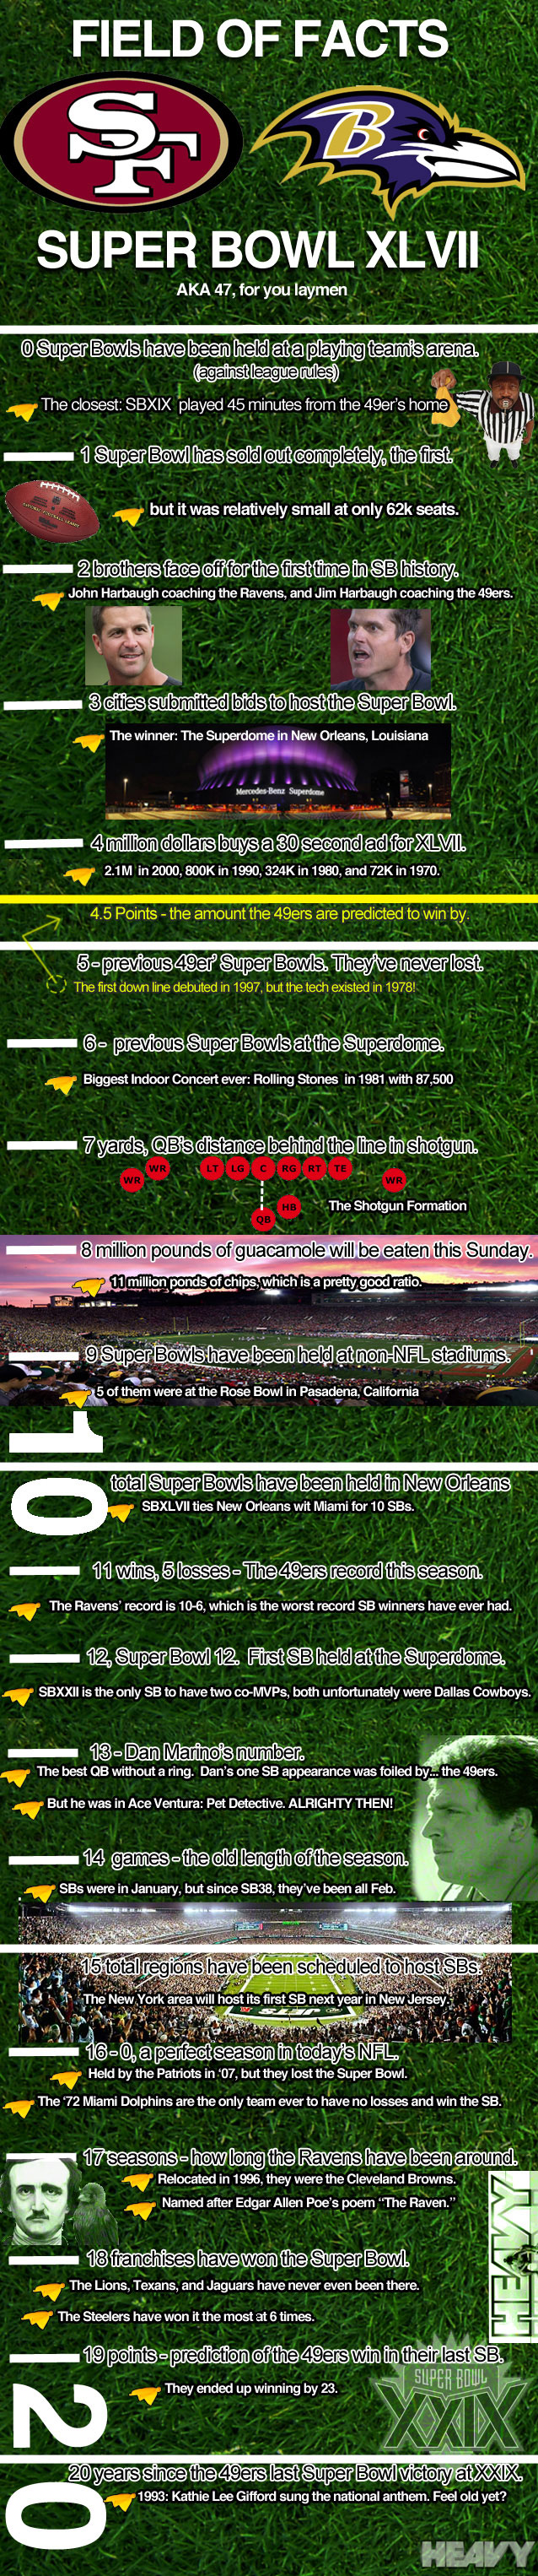 Superbowl 47 and super bowl trivia facts